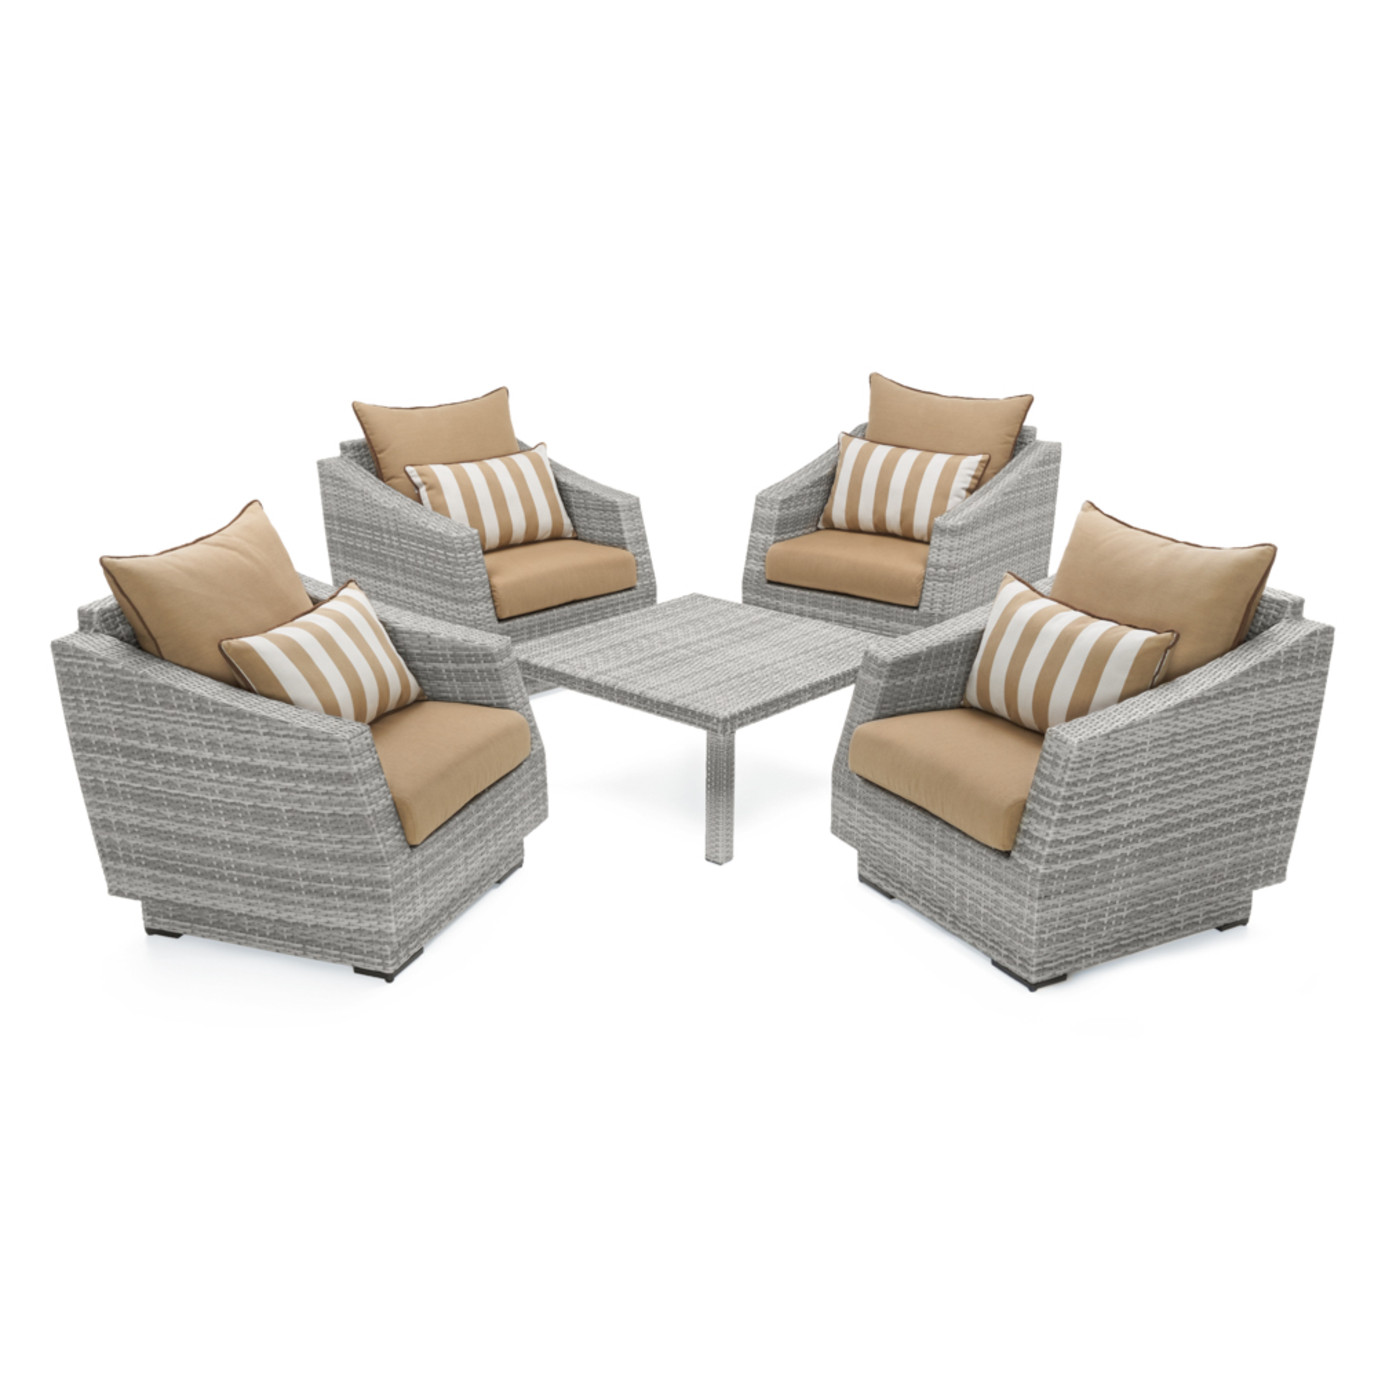 Cannes™ 5 Piece Club & Table Chat Set - Maxim Beige